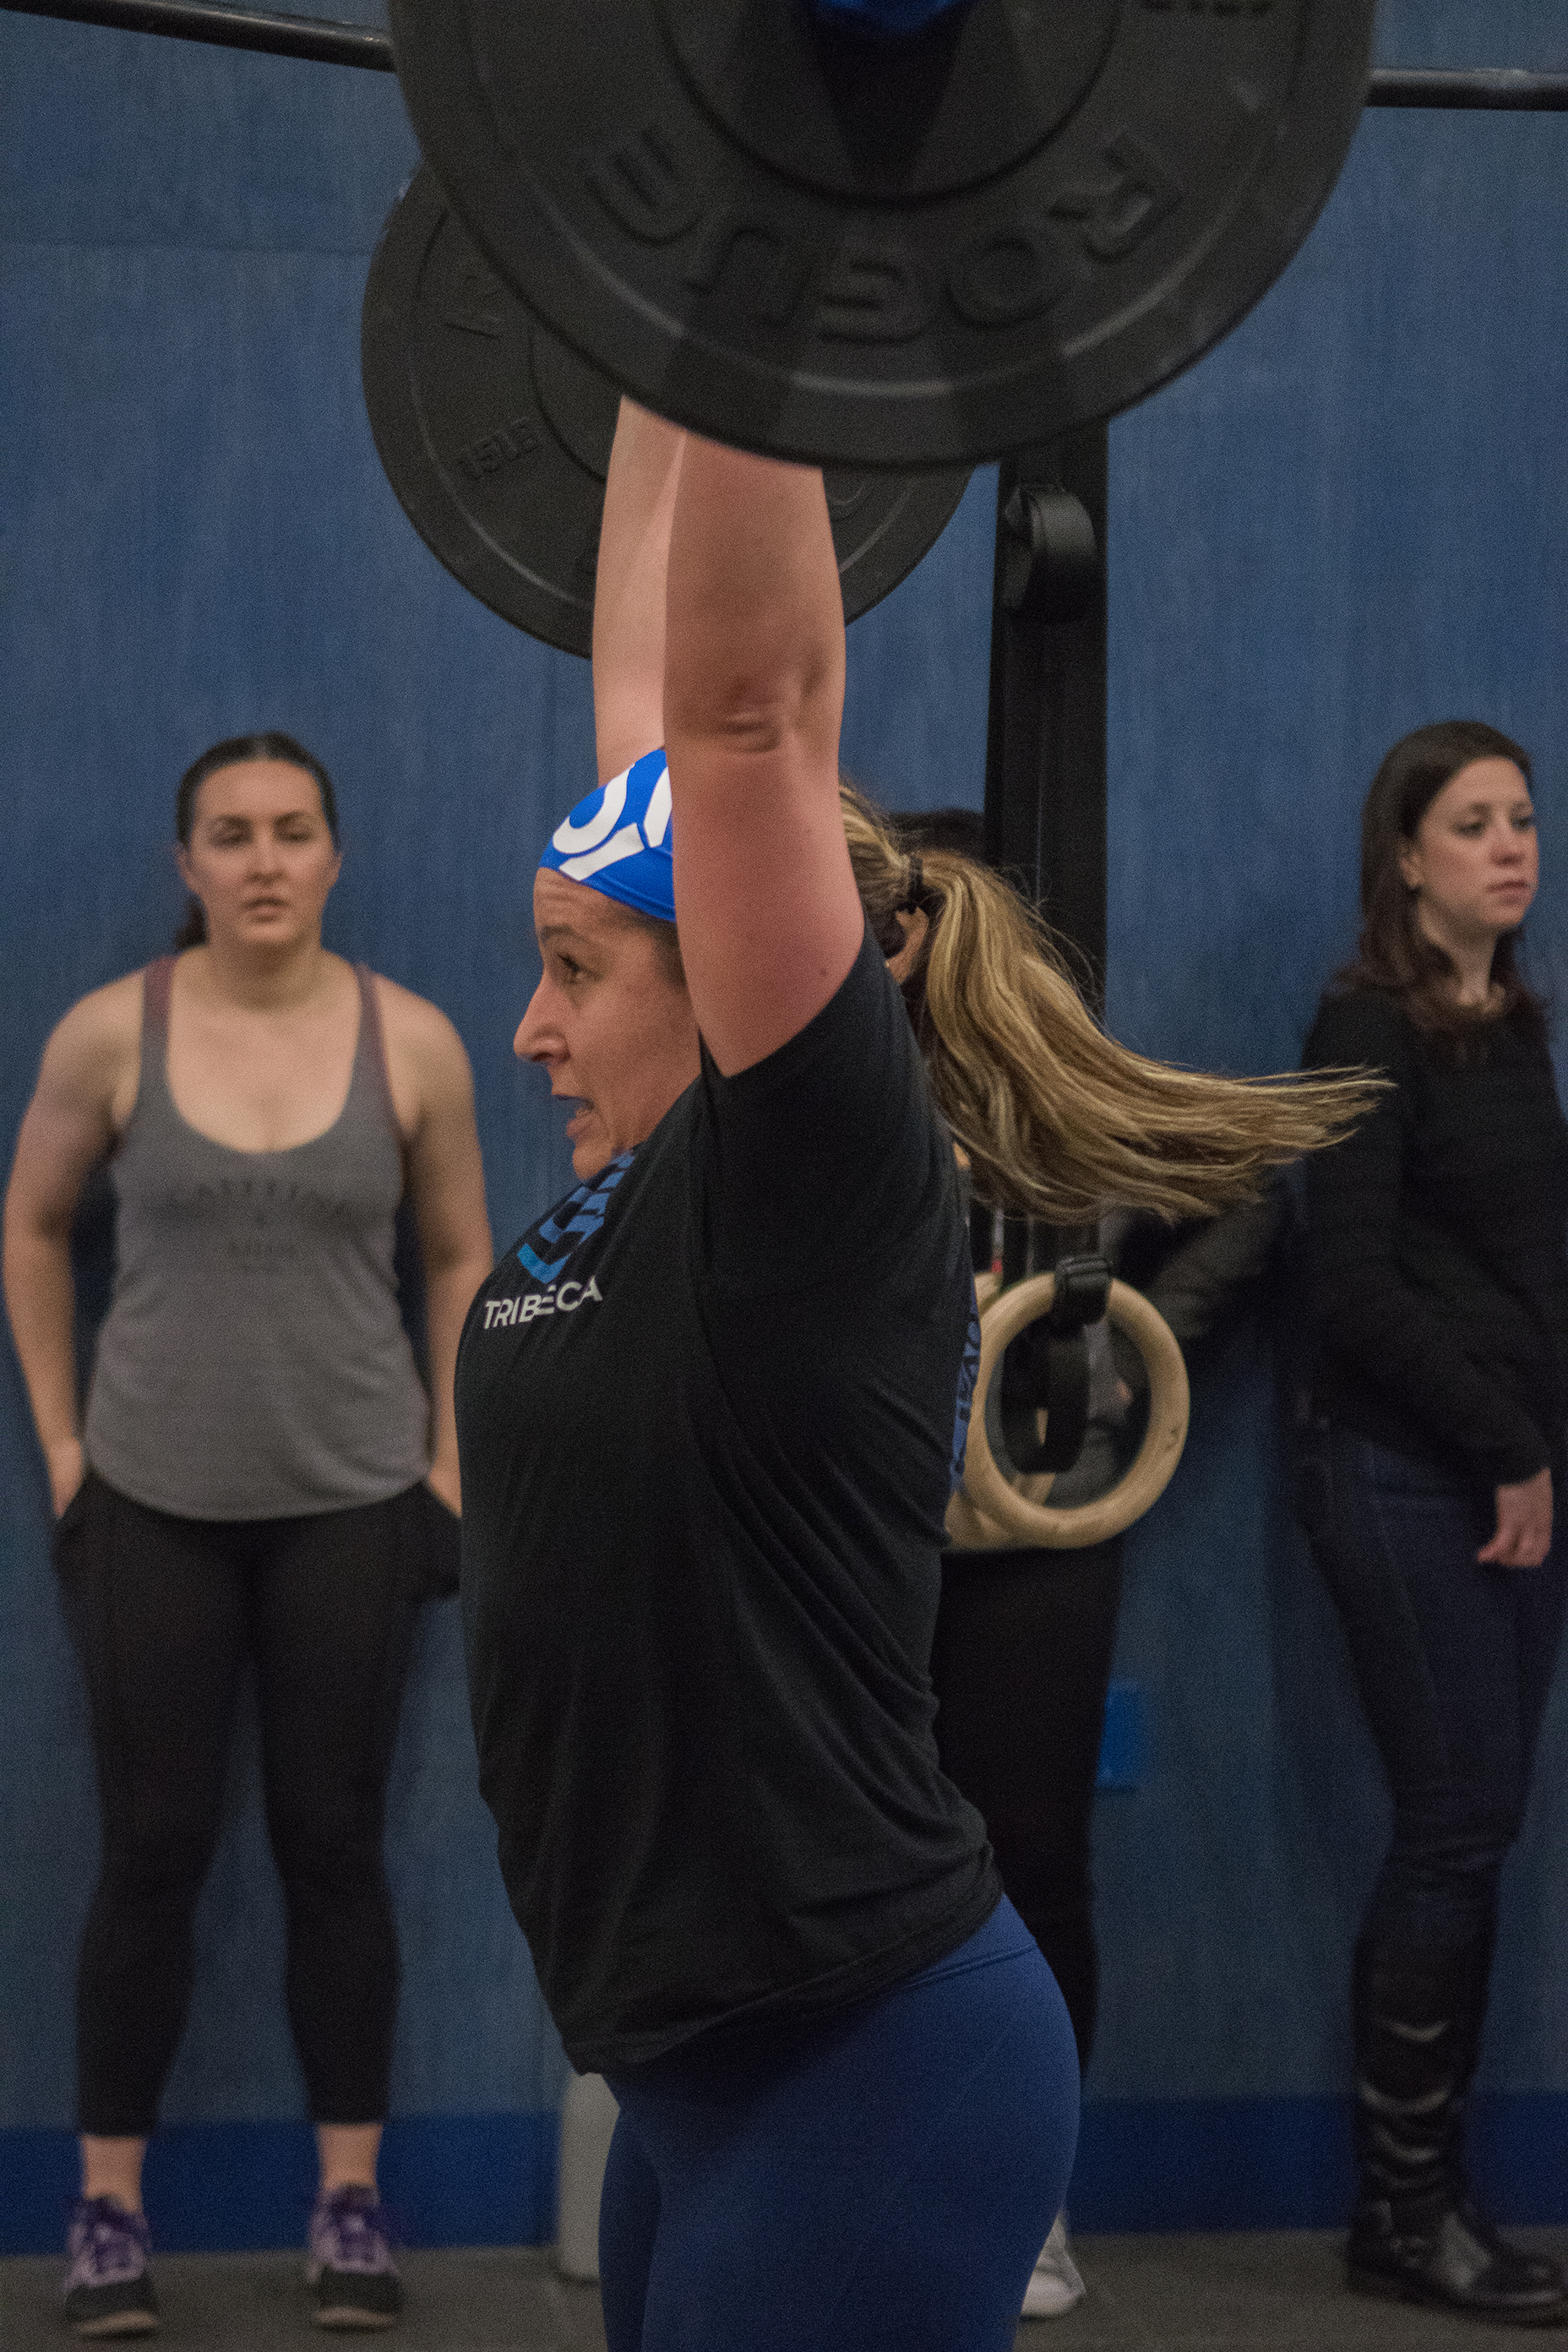 ICE NYC CrossFit Open 17.5 @martsromero - Quick Selects 017 20170324.jpg